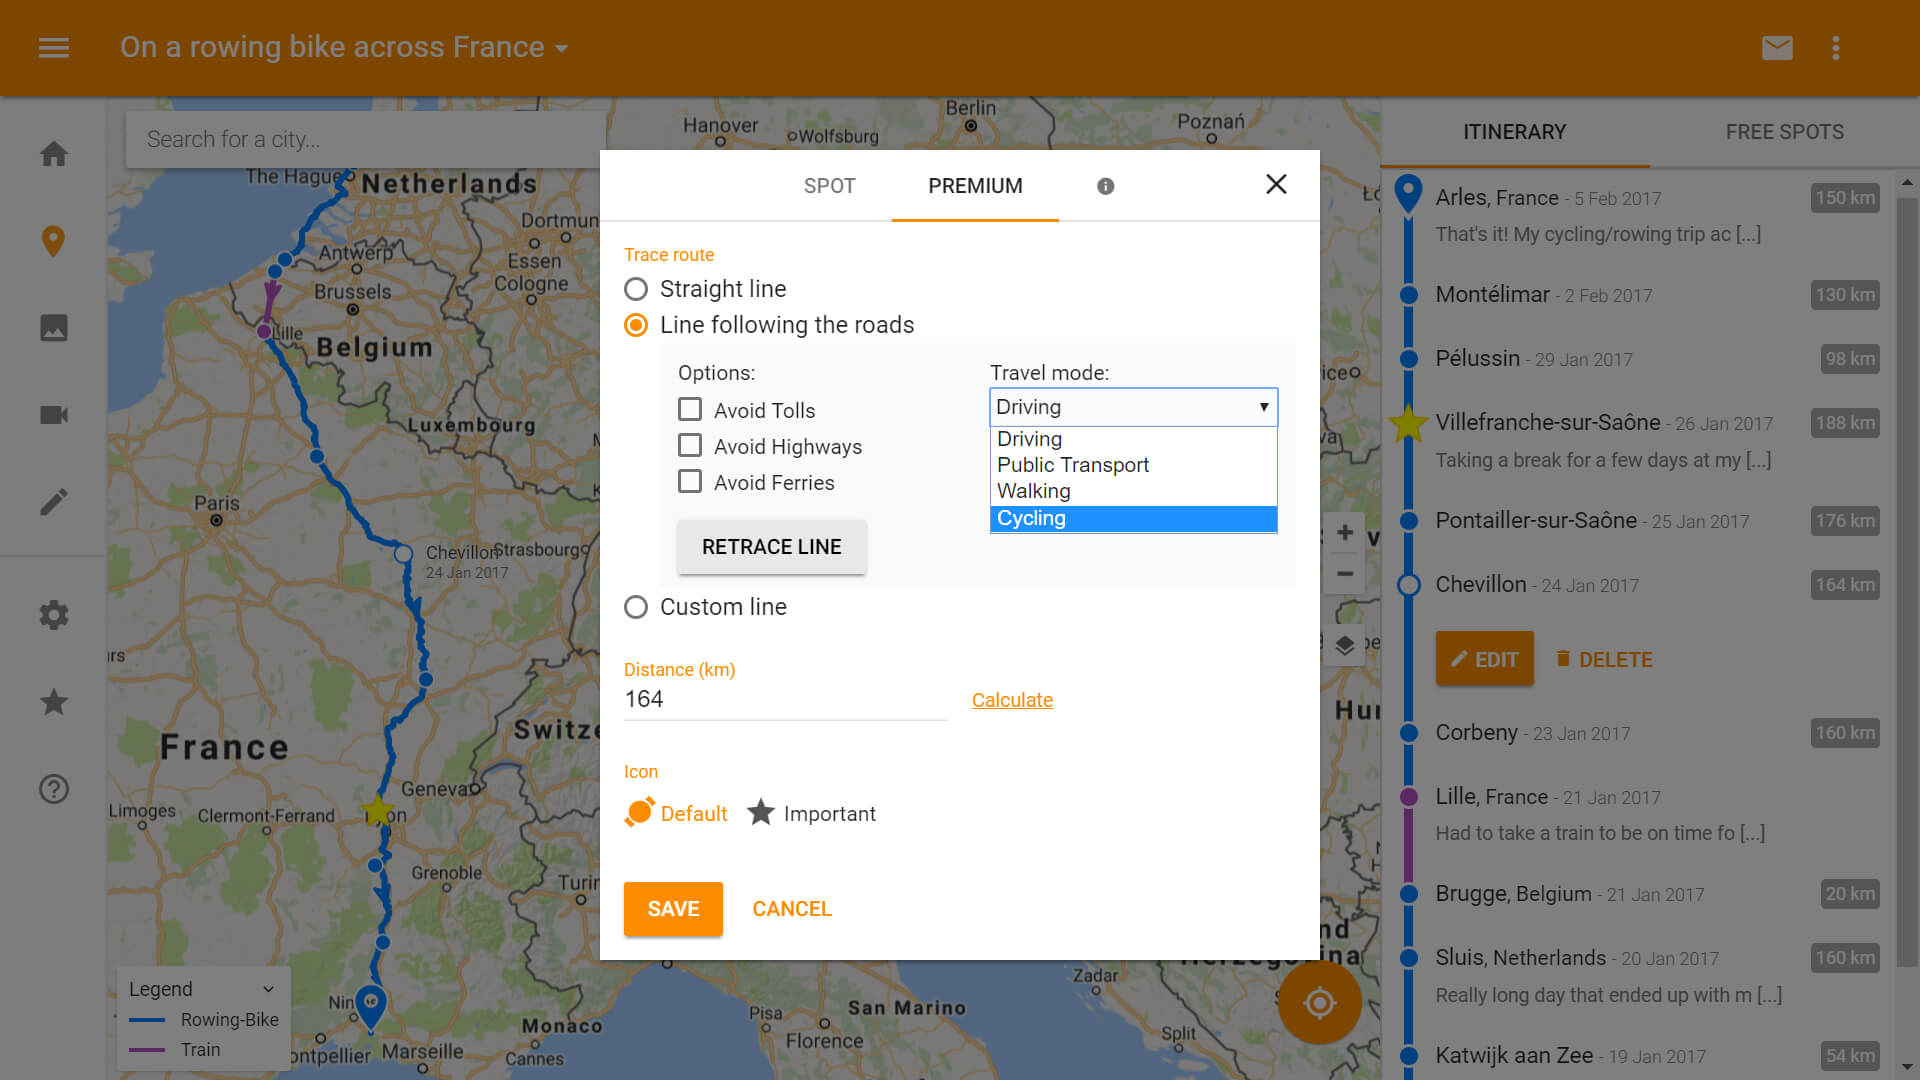 Advanced itinerary builder/planner using geolocation